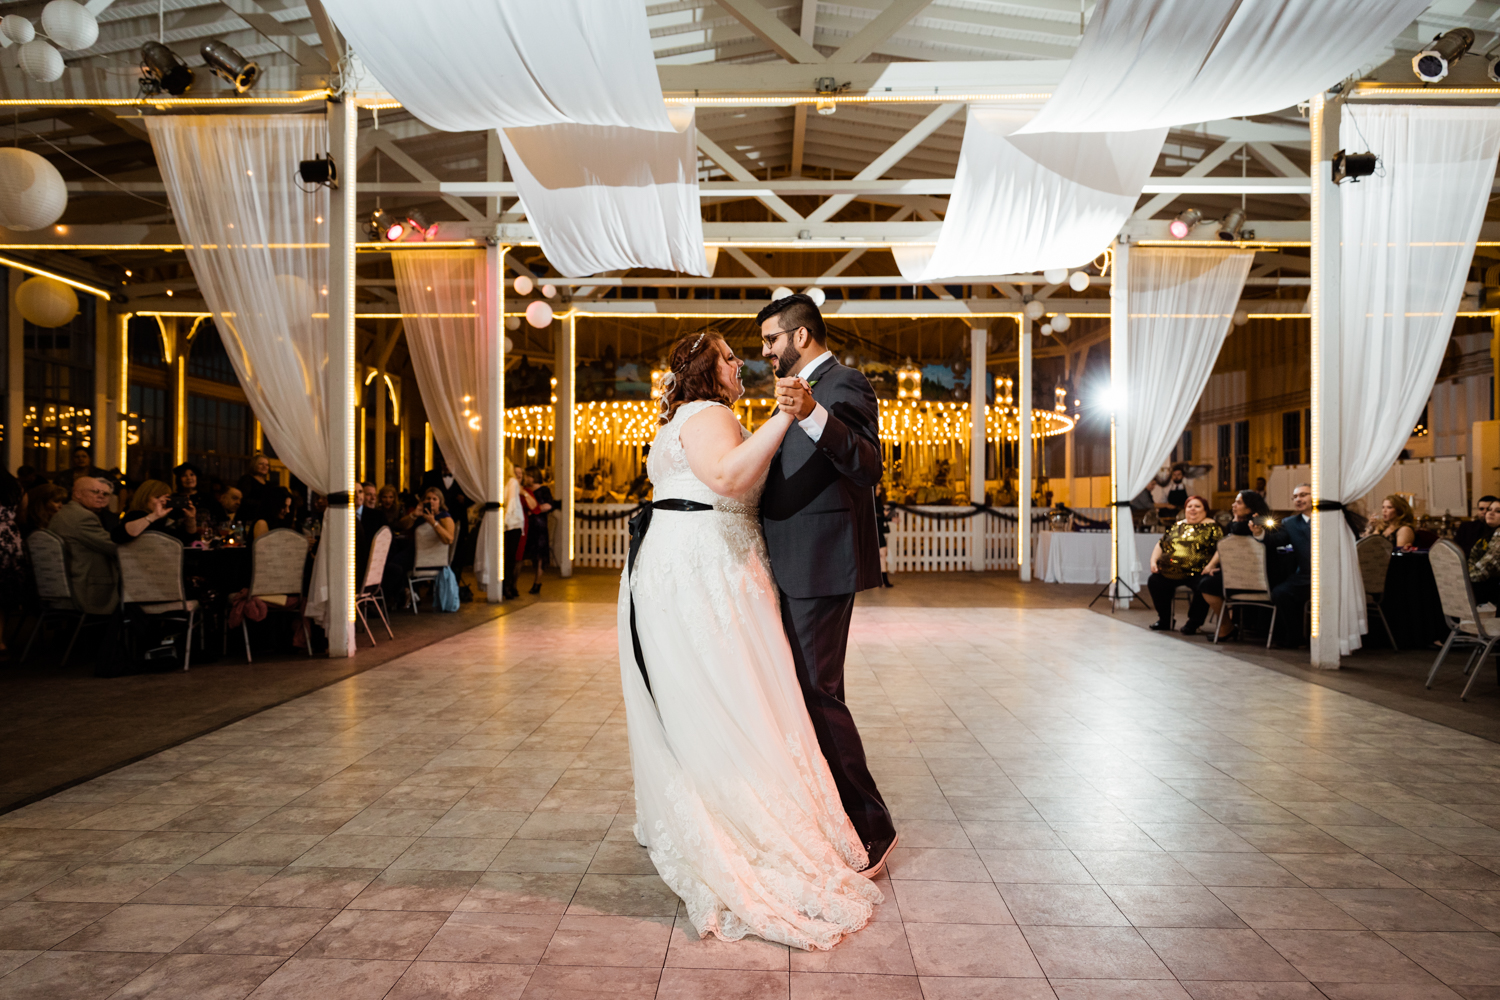 Bride and groom dancing in front of merry-go-round on wedding